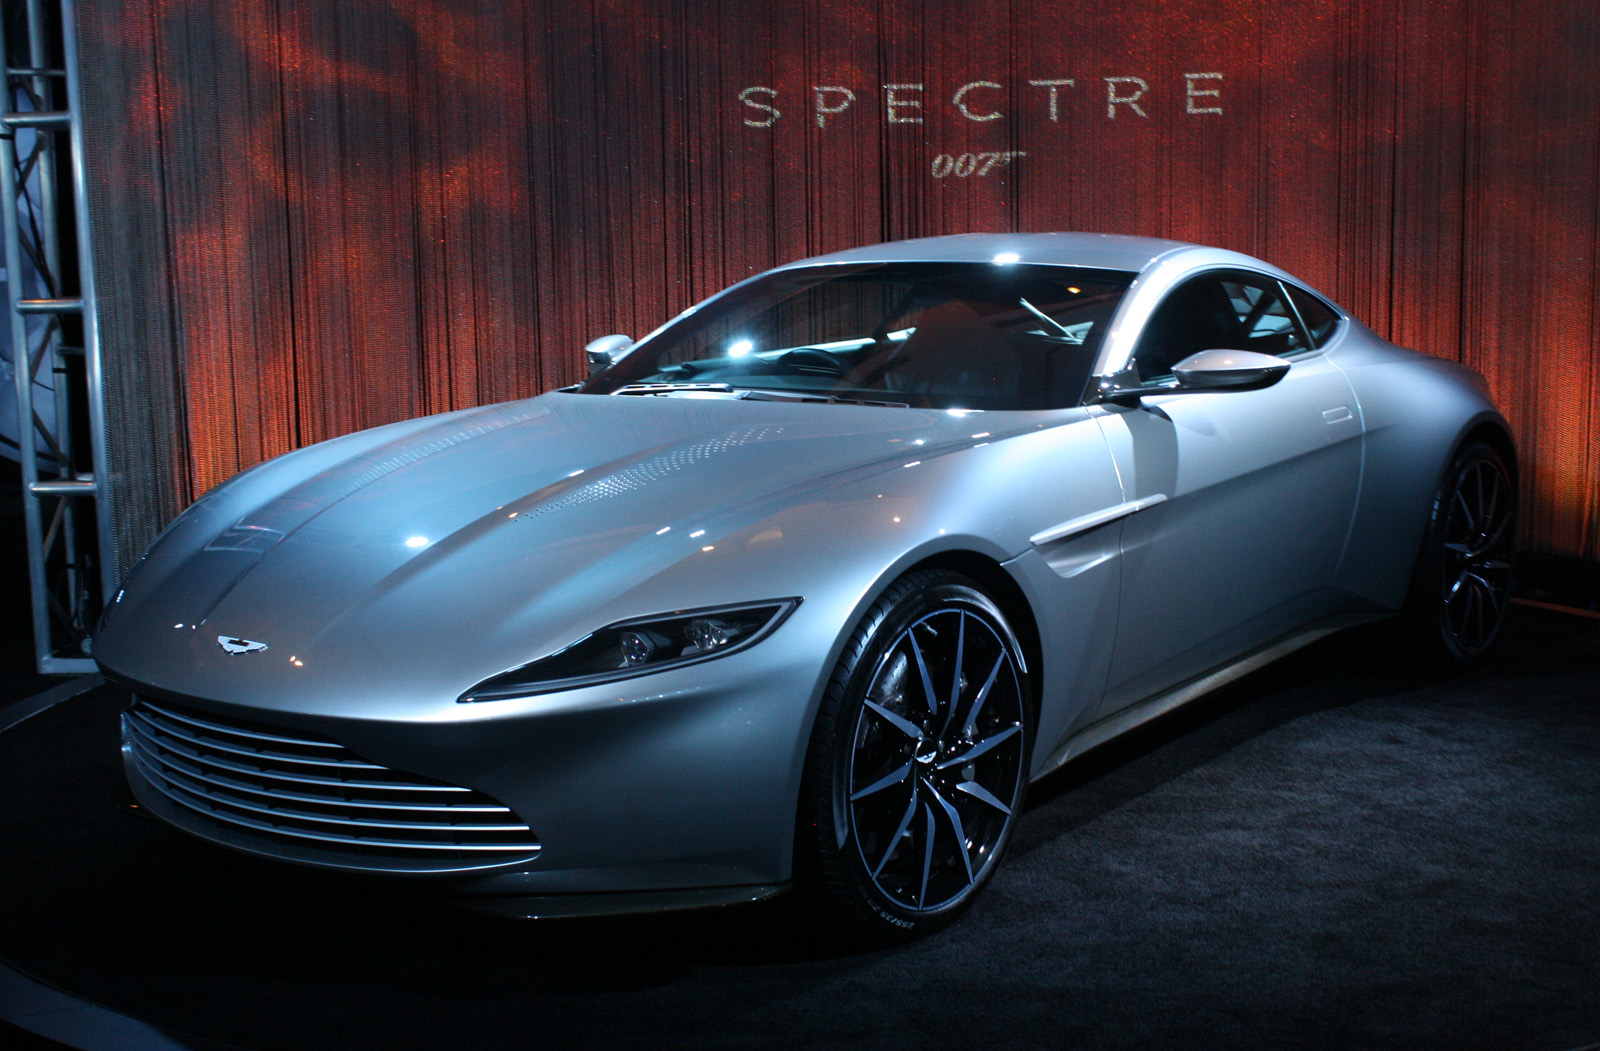 James Bond S Aston Martin Db10 To Be Auctioned For Charity